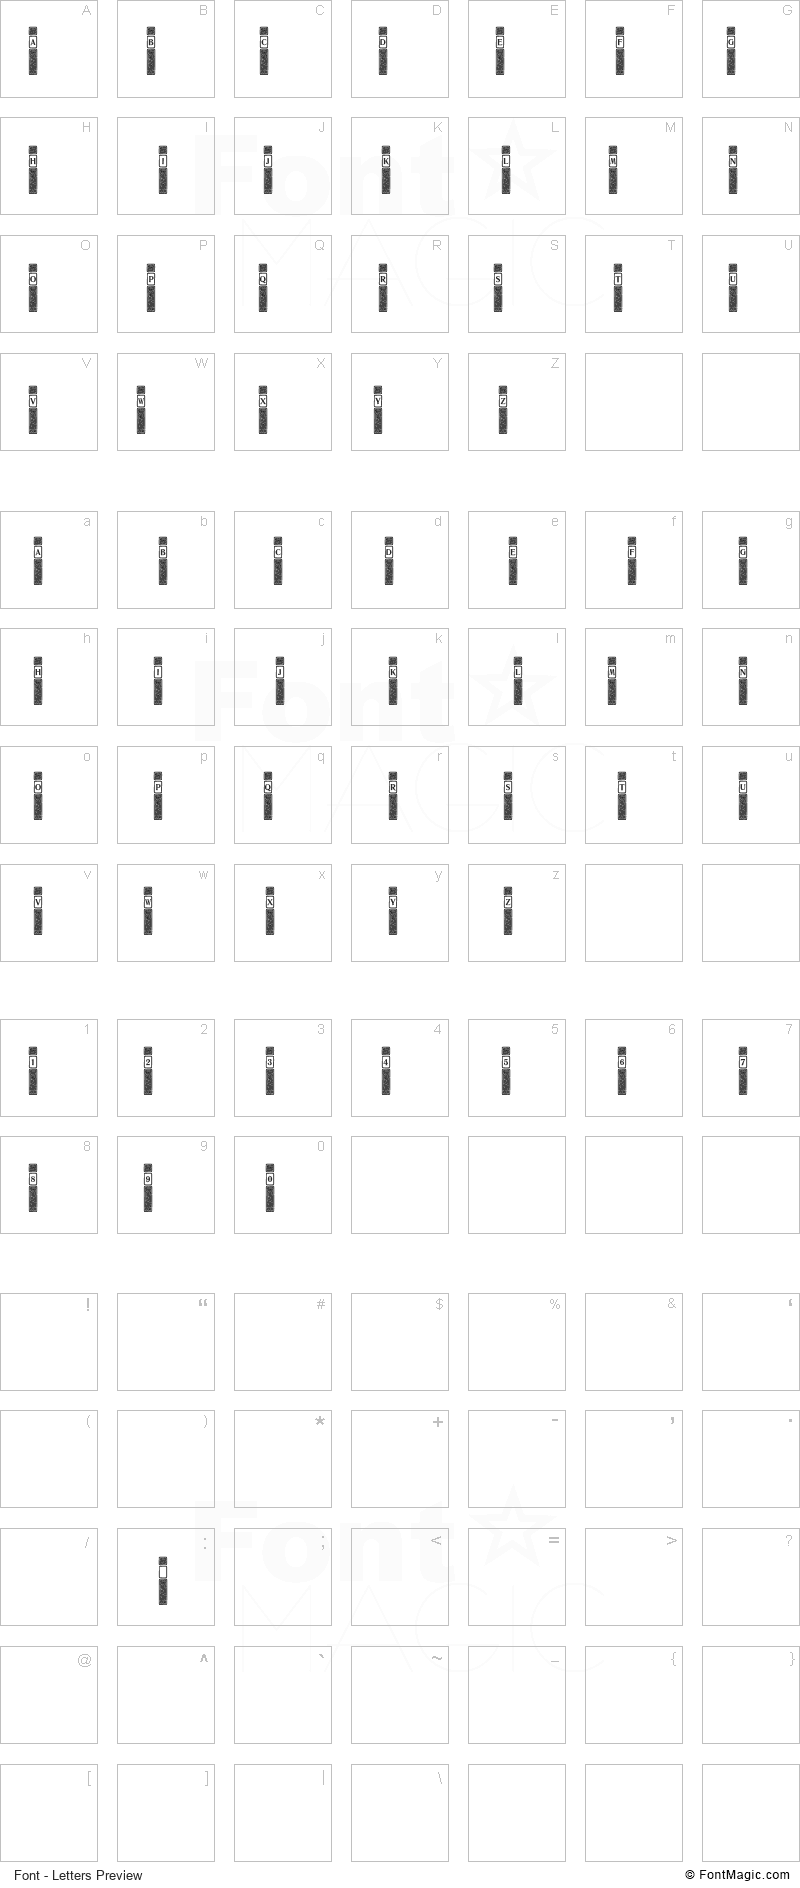 VertiCaps Font - All Latters Preview Chart